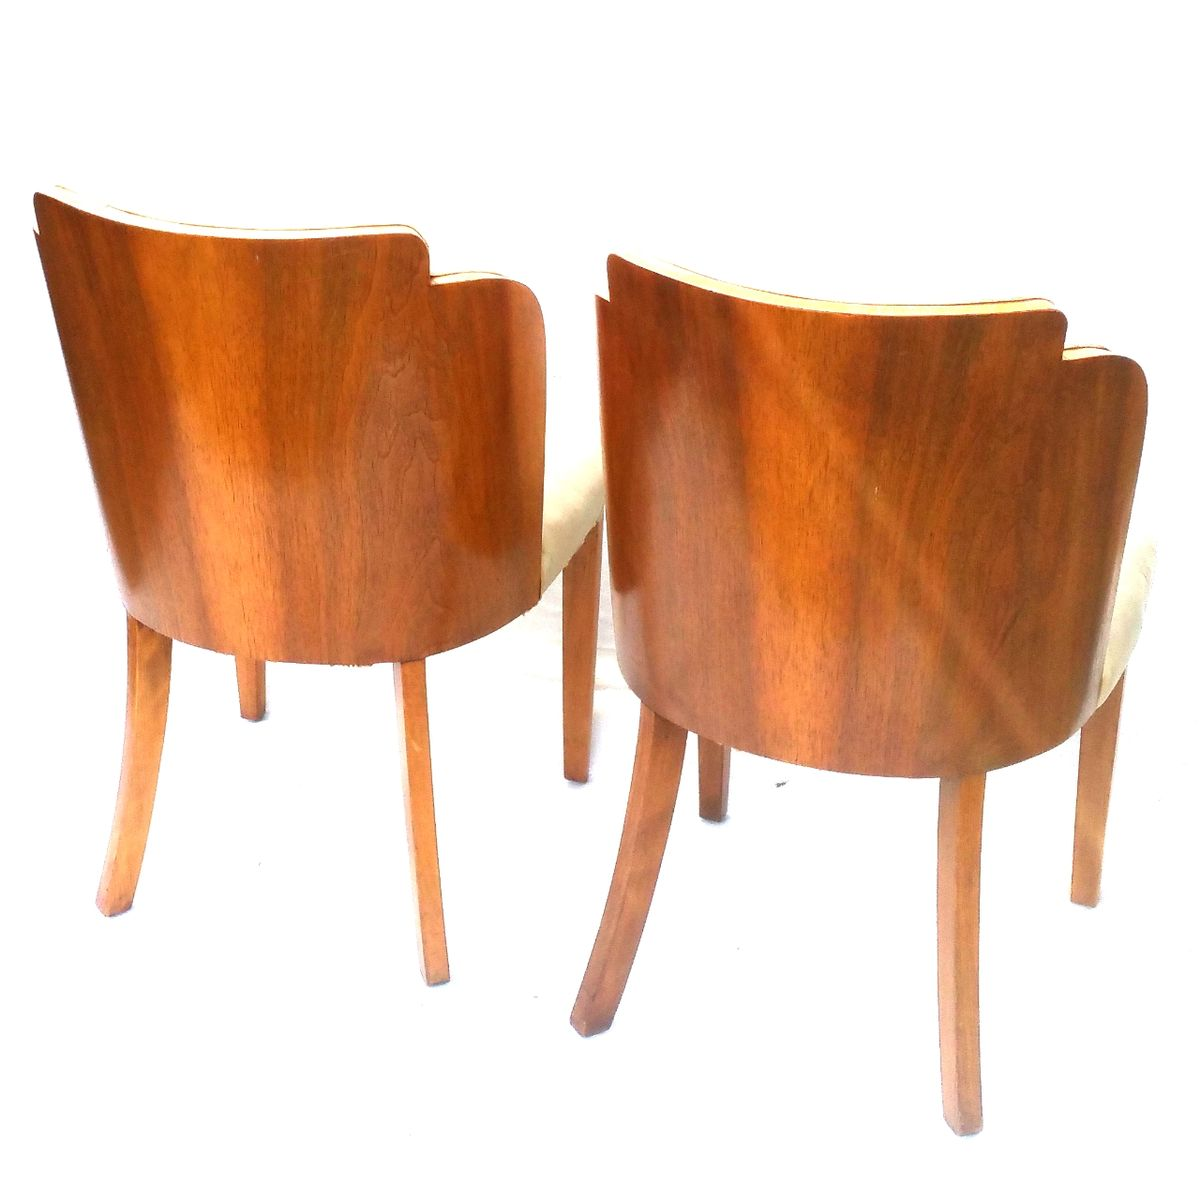 Art deco dining chairs by harry lou epstein set of 4 for sale at pamono - Epstein art deco furniture ...